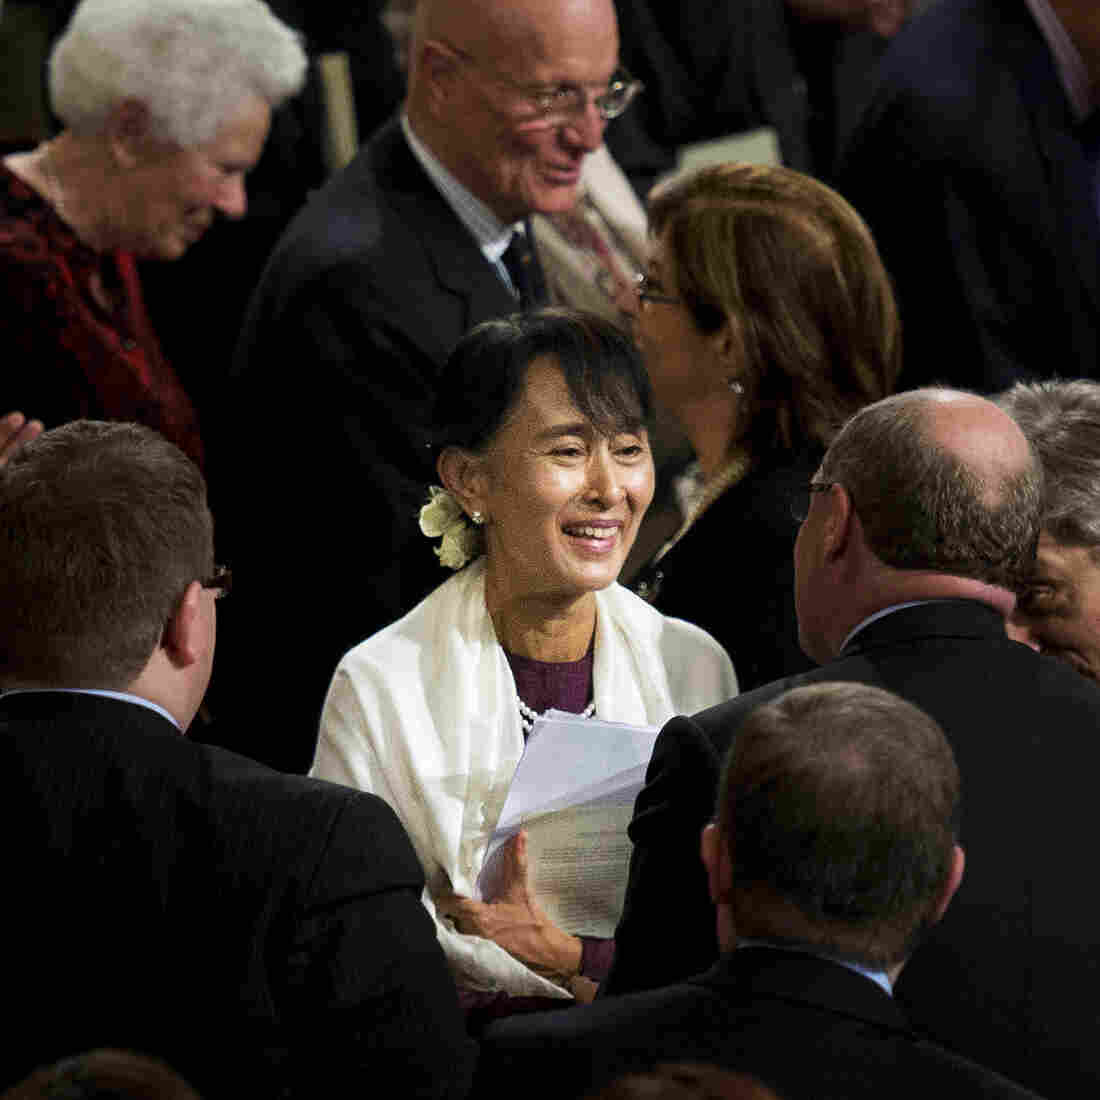 Cheered In Europe, Suu Kyi Faces Crises In Myanmar